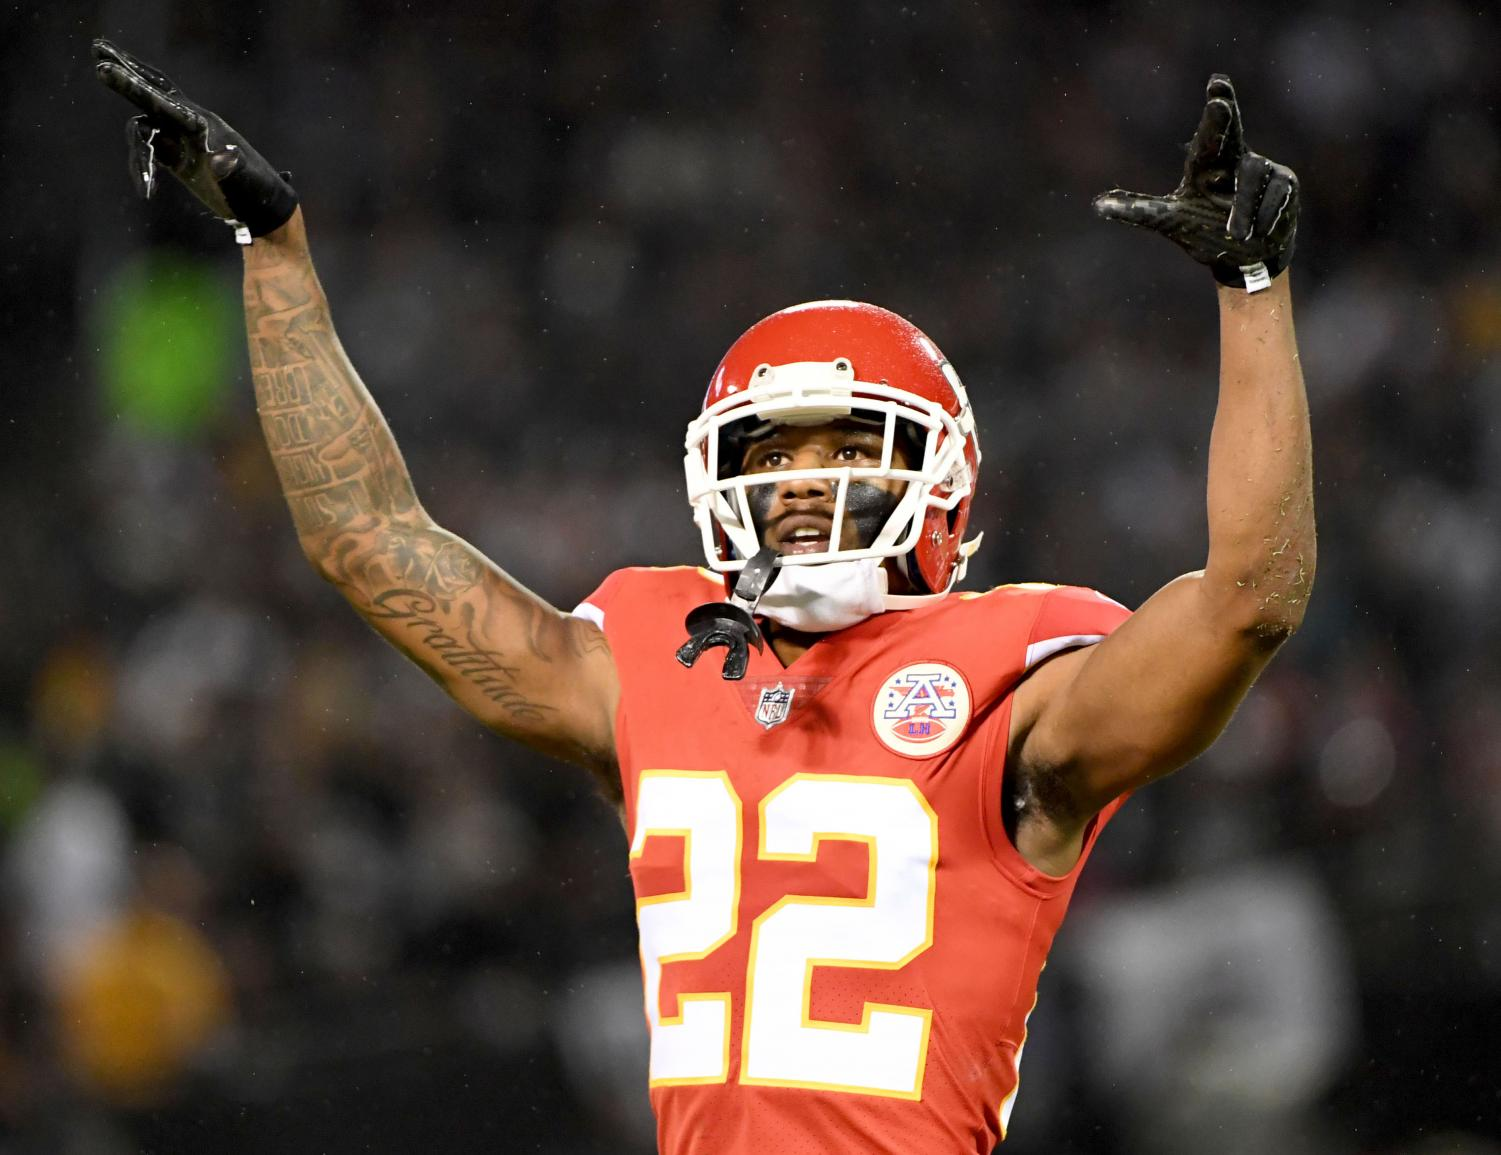 The Kansas City Chiefs' Marcus Peters (22) gestures to the crowd in the second quarter against the Oakland Raiders at the Coliseum in Oakland, Calif., on Thursday, Oct. 19, 2017. The Raiders won, 31-30. (Doug Duran/Bay Area News Group/TNS)